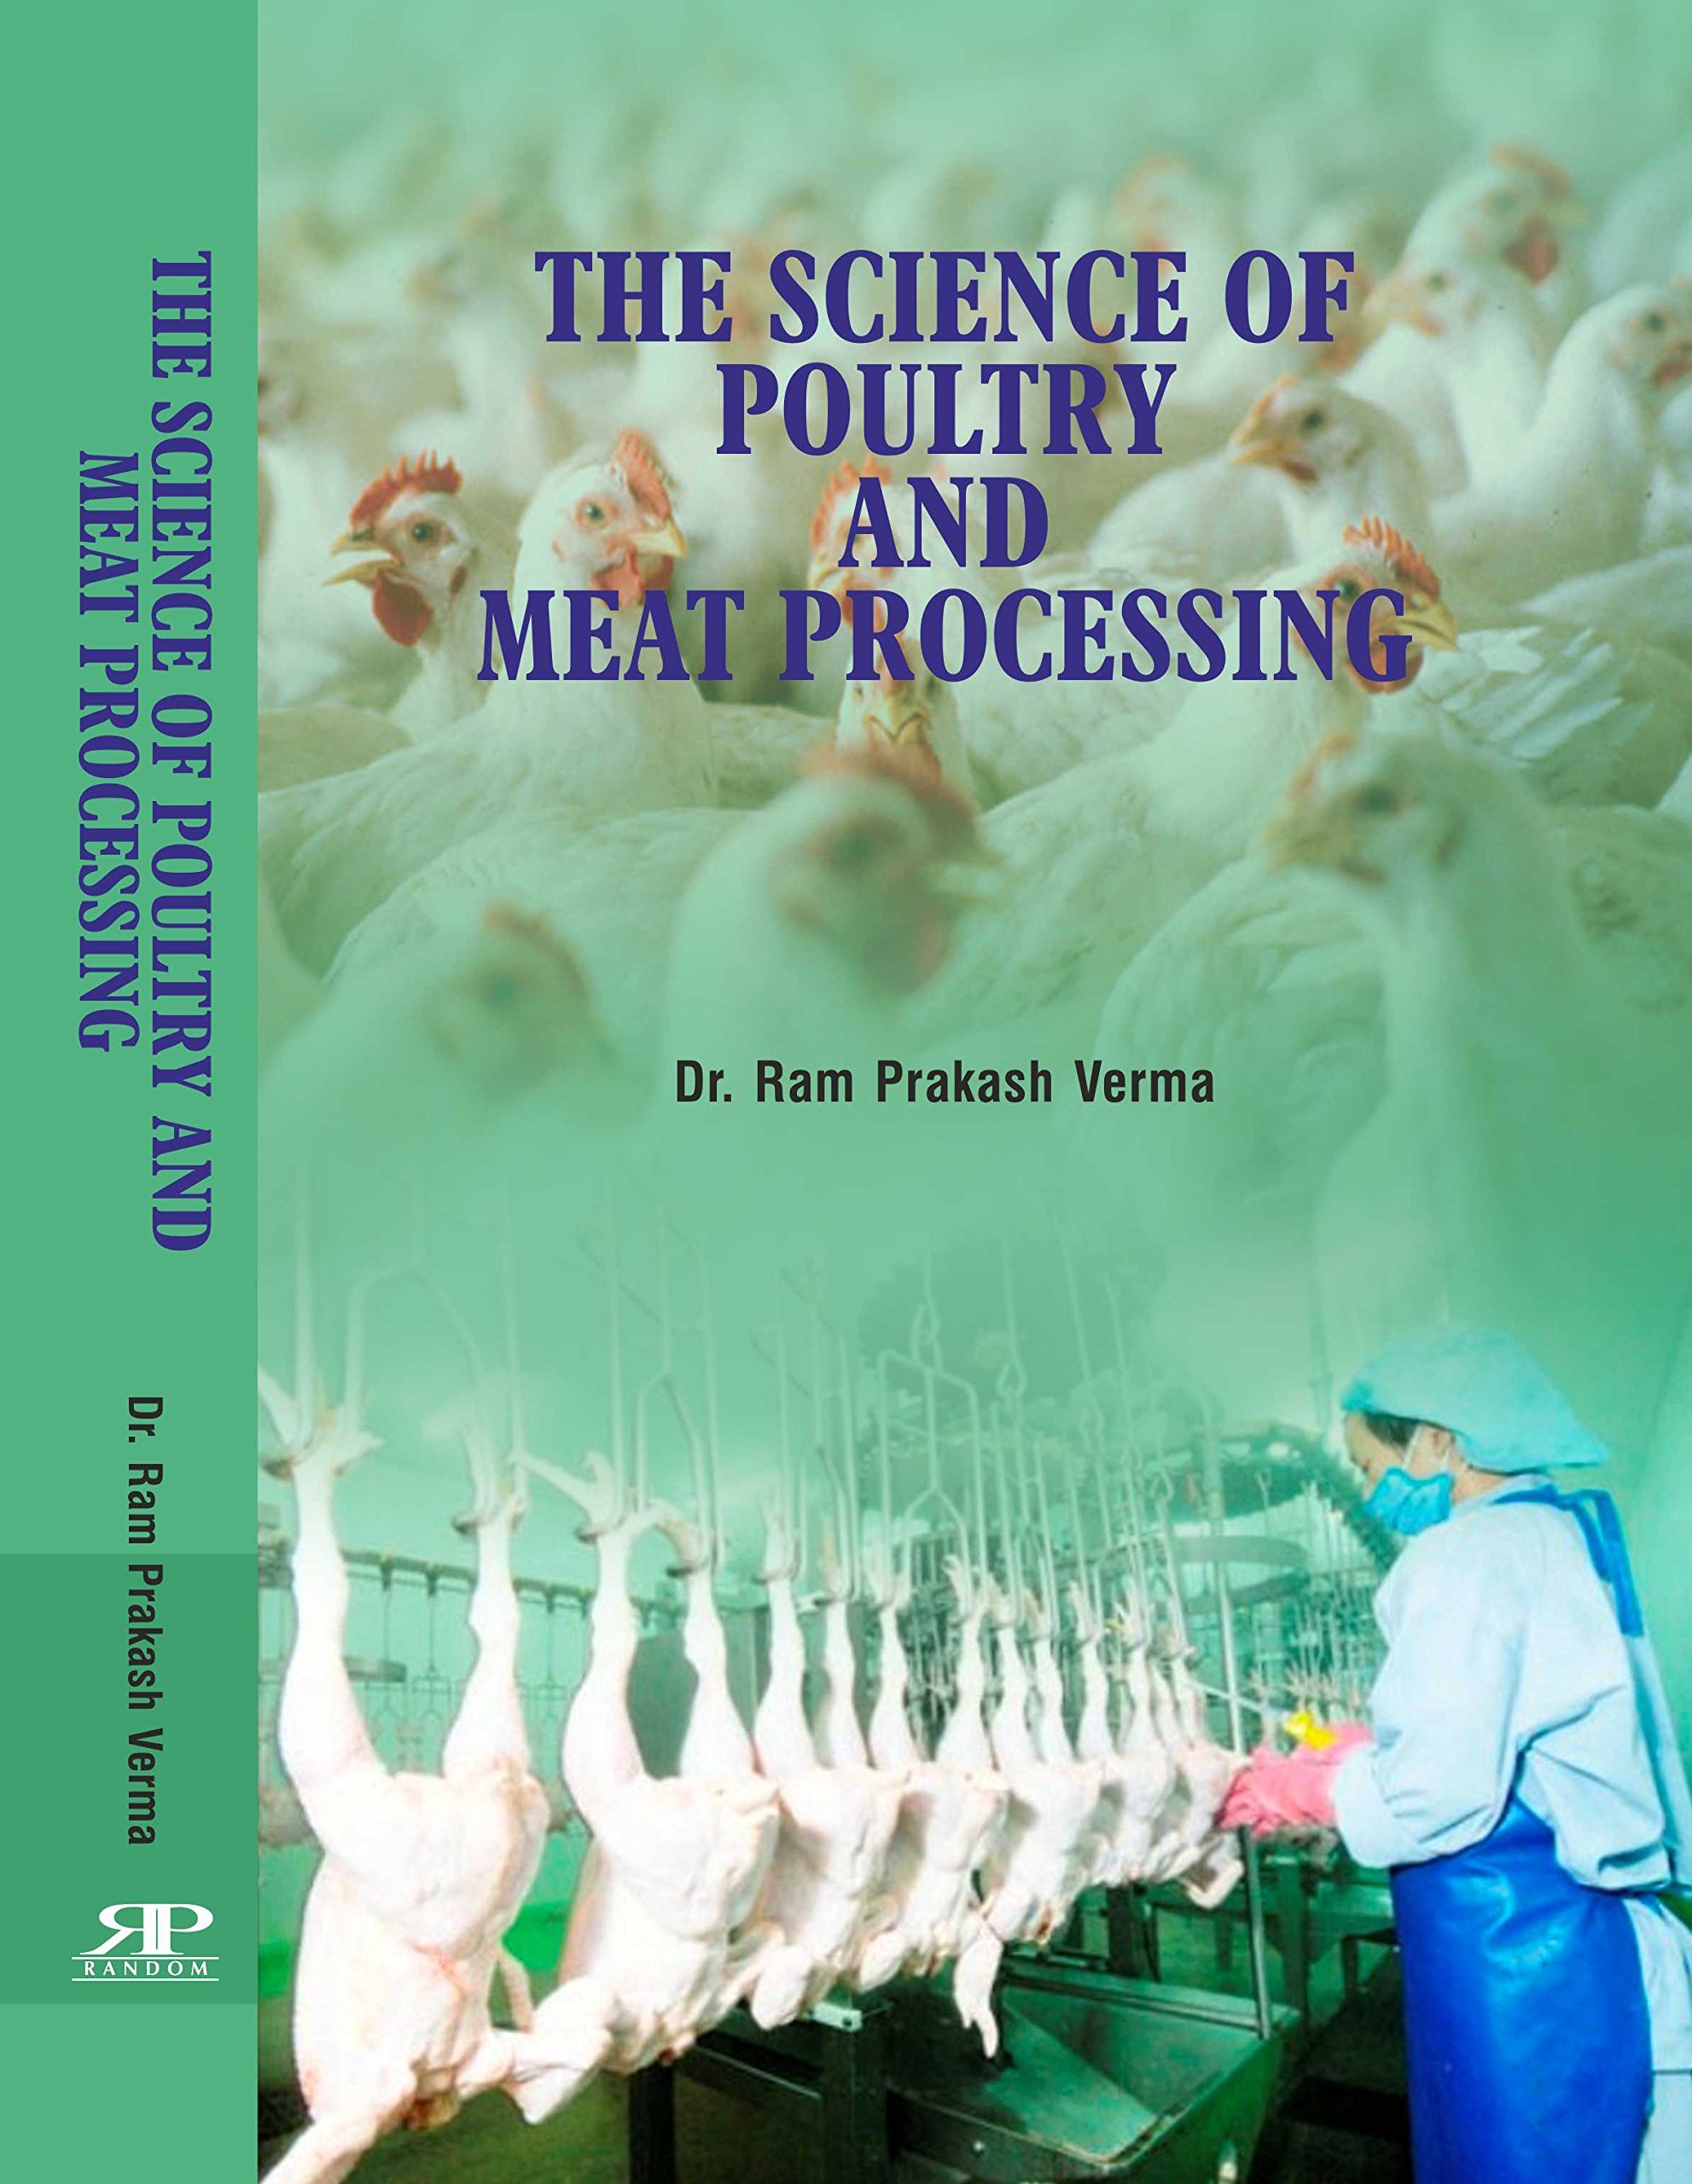 The Science of Poultry and Meat Processing